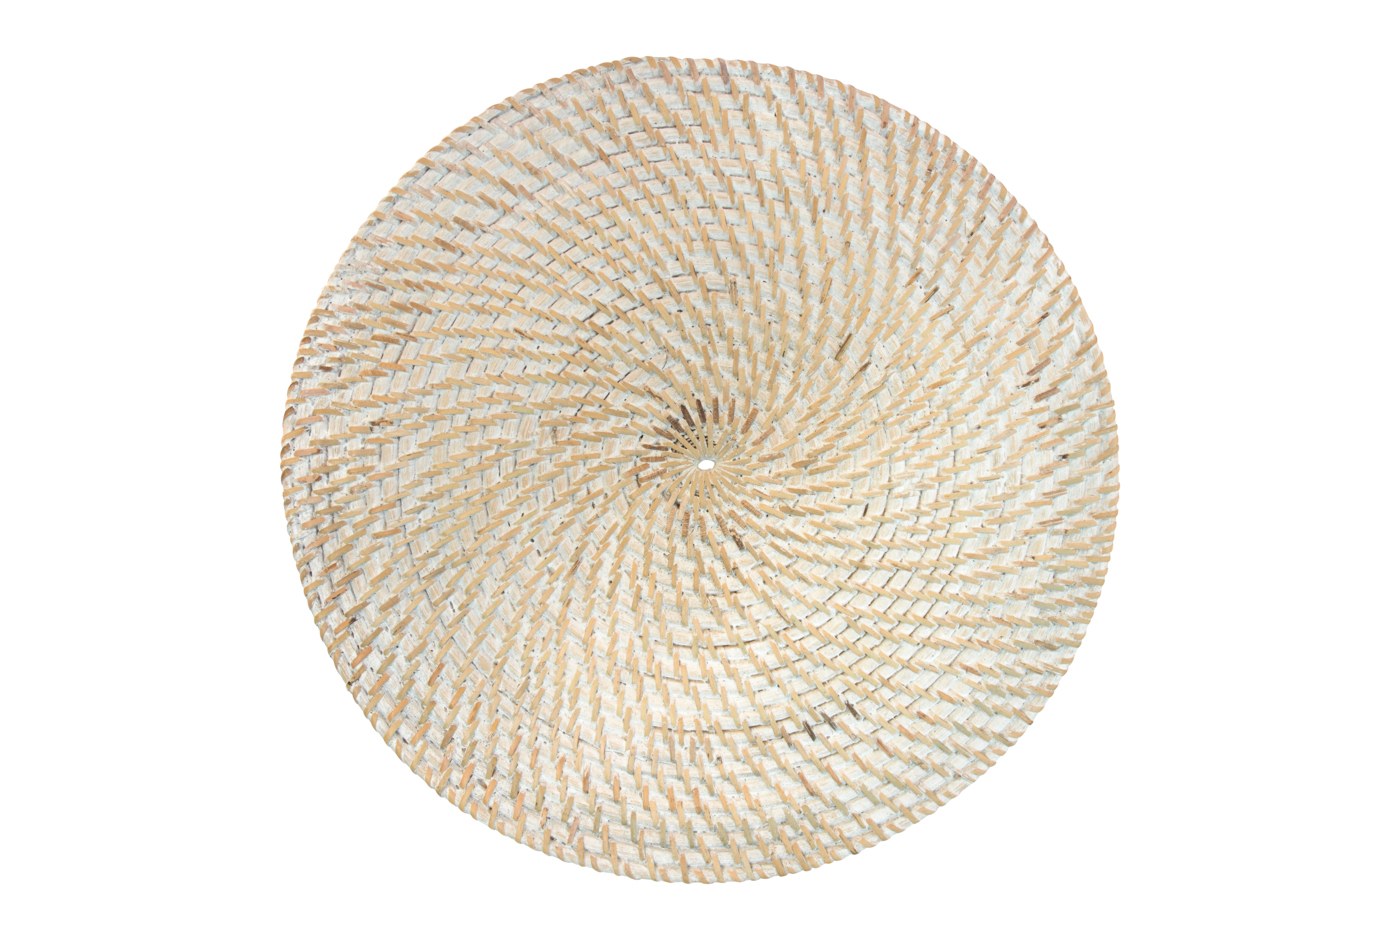 Round woven rattan placemat whitewash